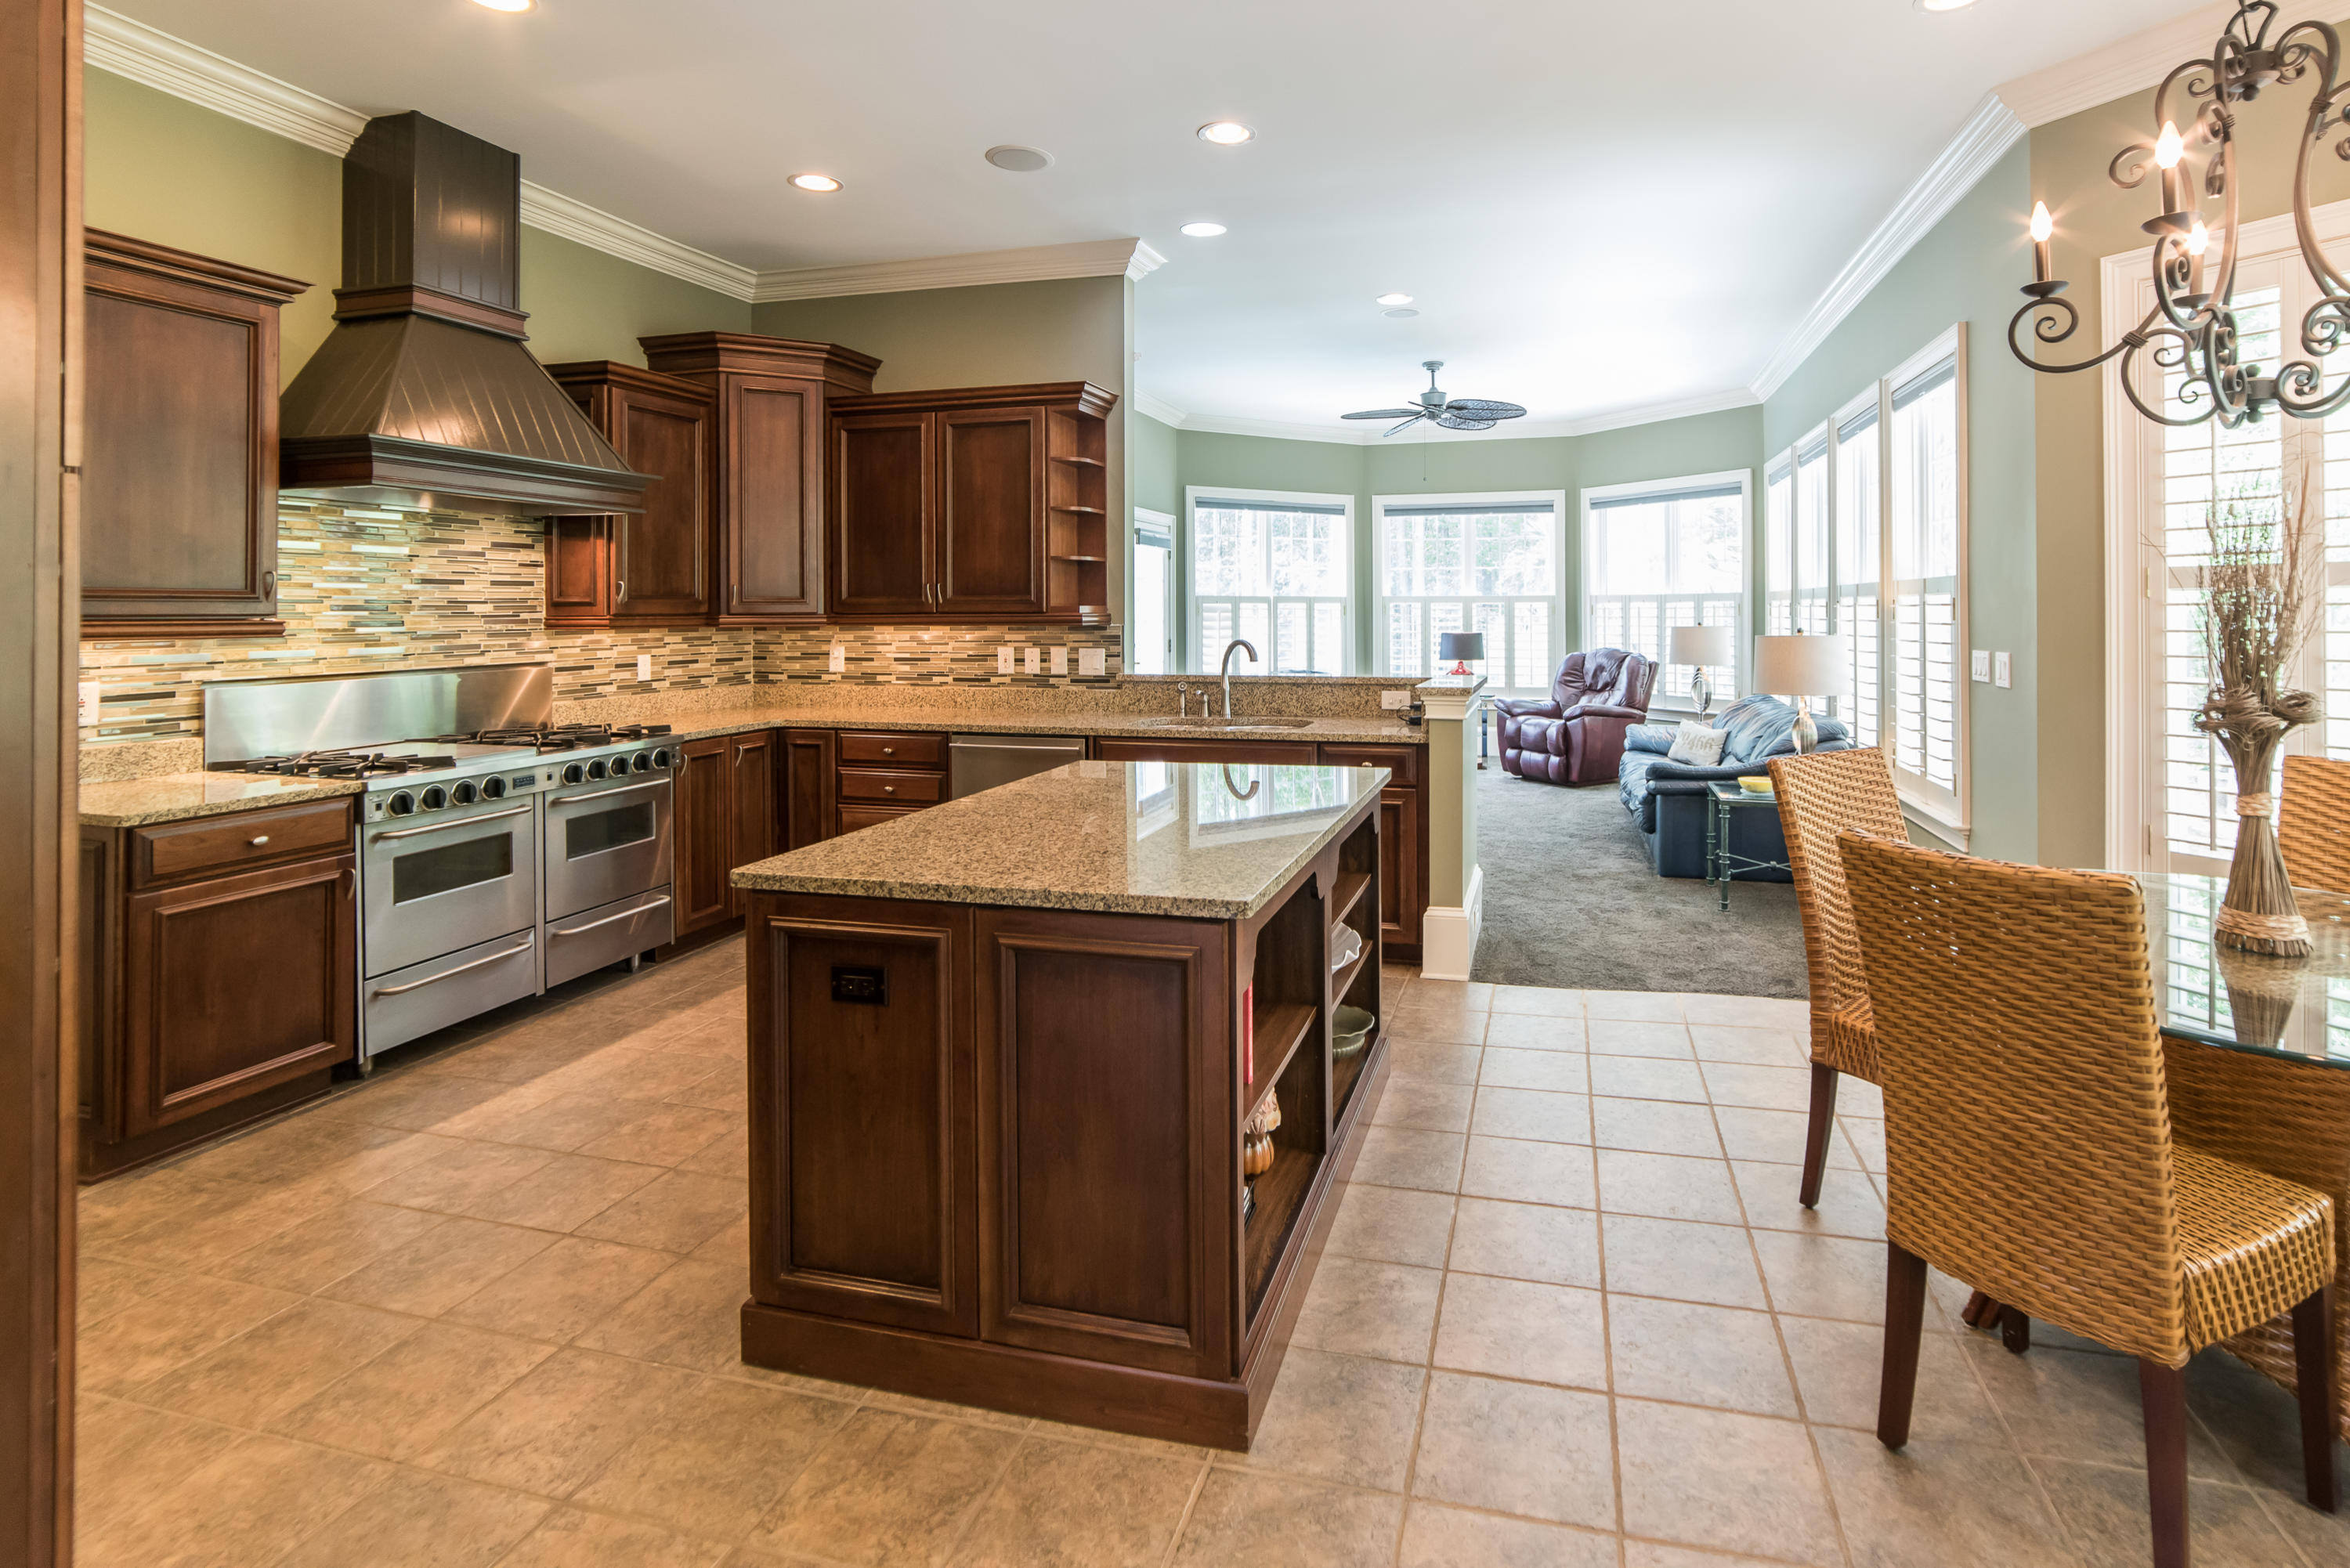 Dunes West Homes For Sale - 1816 Shell Ring Circle, Mount Pleasant, SC - 2